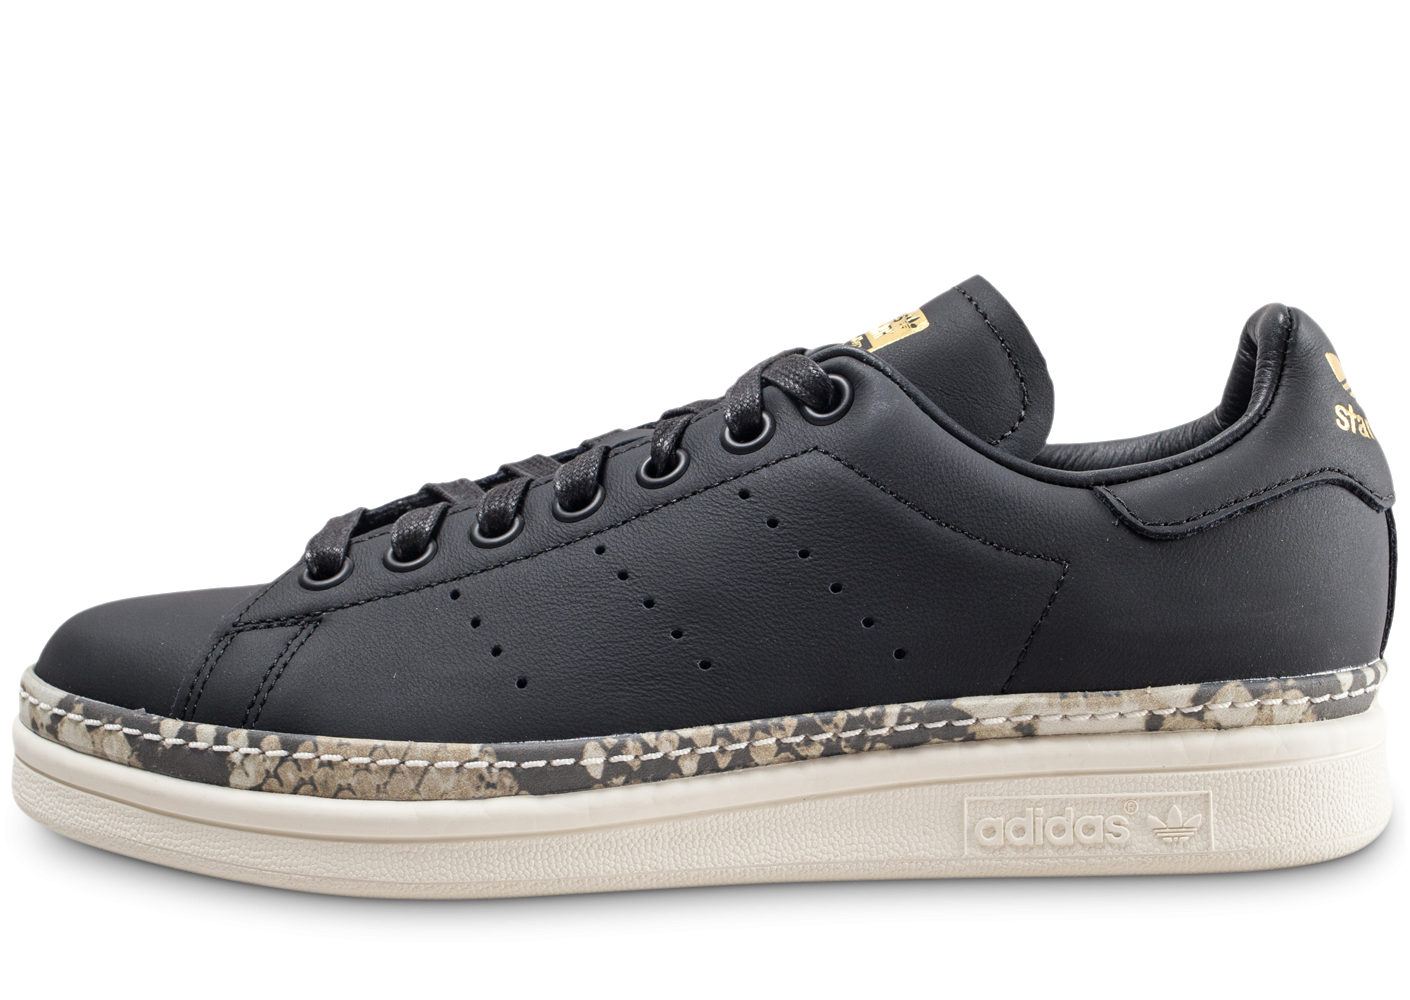 adidas Stan Smith New Bold noire femme